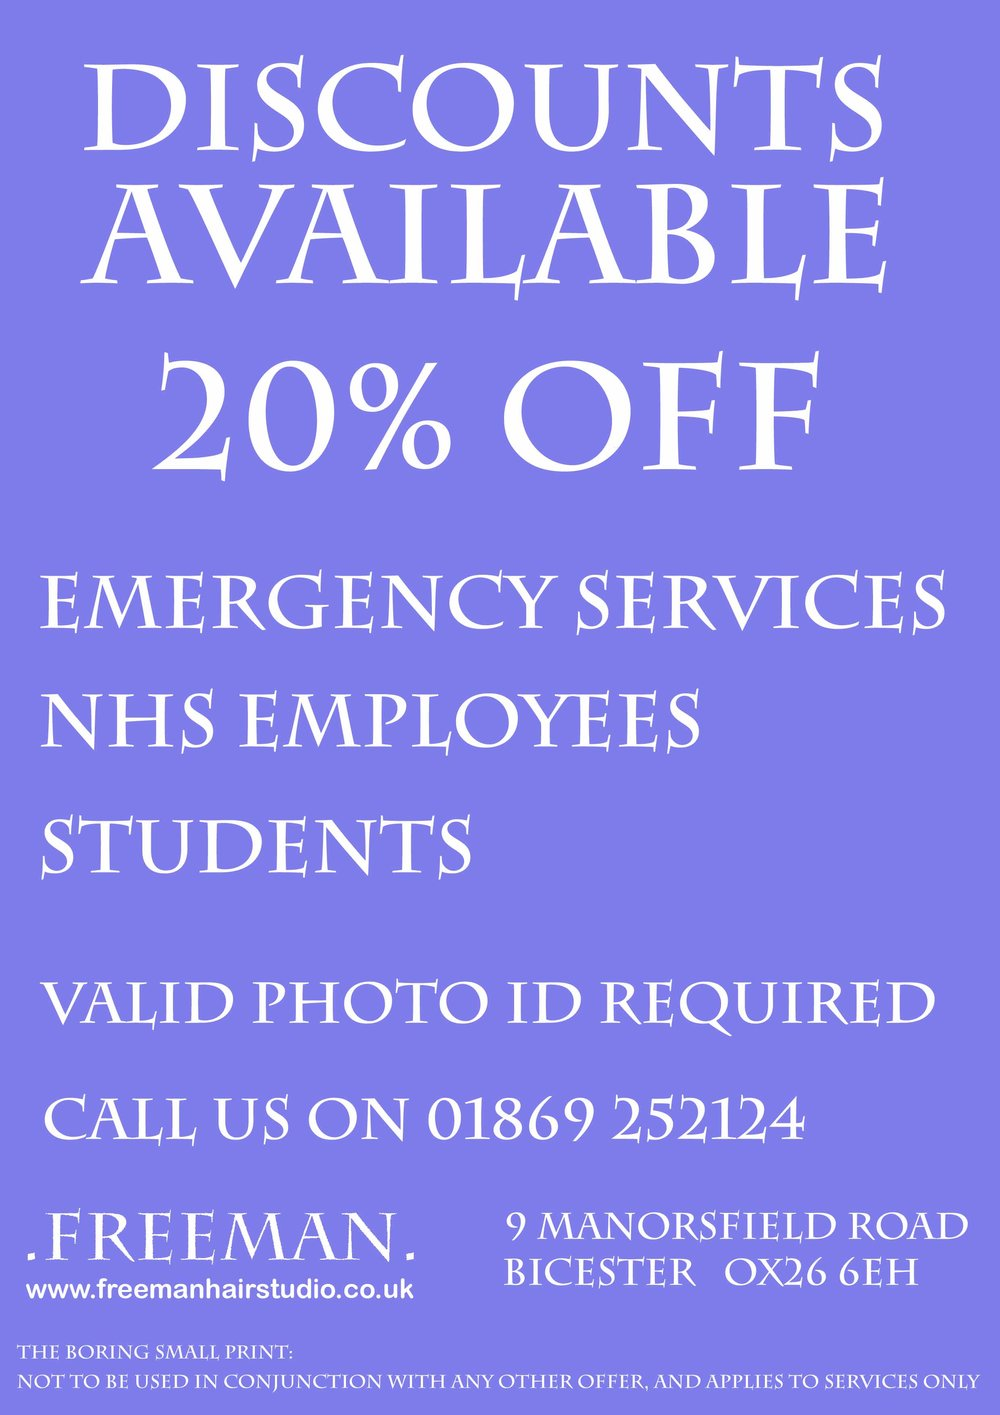 Concessions - We like to support the great work done by our Police, Ambulance & Fire Services, as well as those working tirelessly within the NHS. So please take advantage of our 20% discount.We also offer the same discount to students.Mention when booking, and please bring valid photo ID to qualify.Applies to services only, and can't be used in conjunction with any other offer.